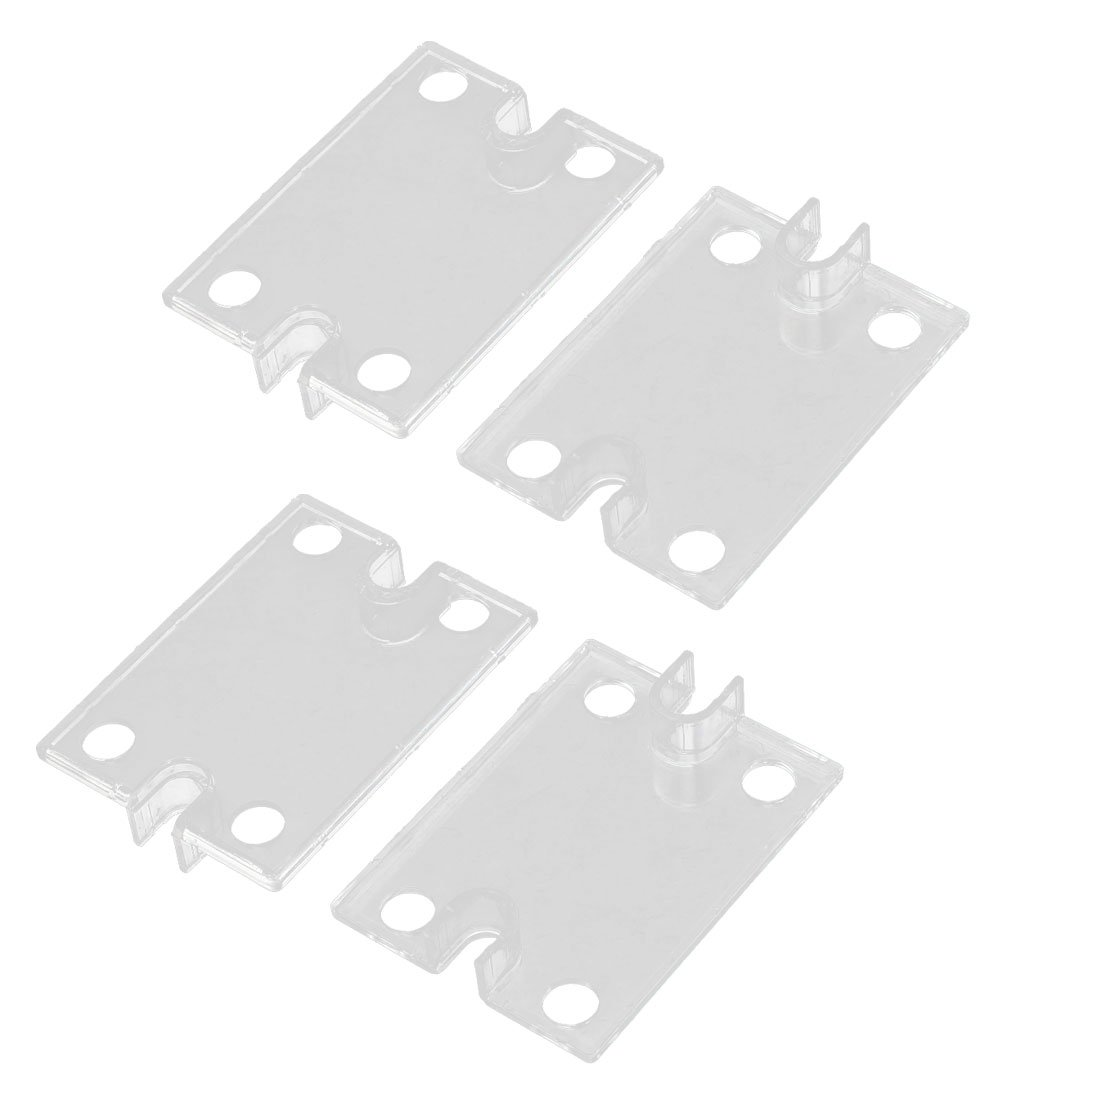 uxcell 4 Pcs 59 x 45 x 10.8mm Clear Plastic Cover for SSR Solid Relay